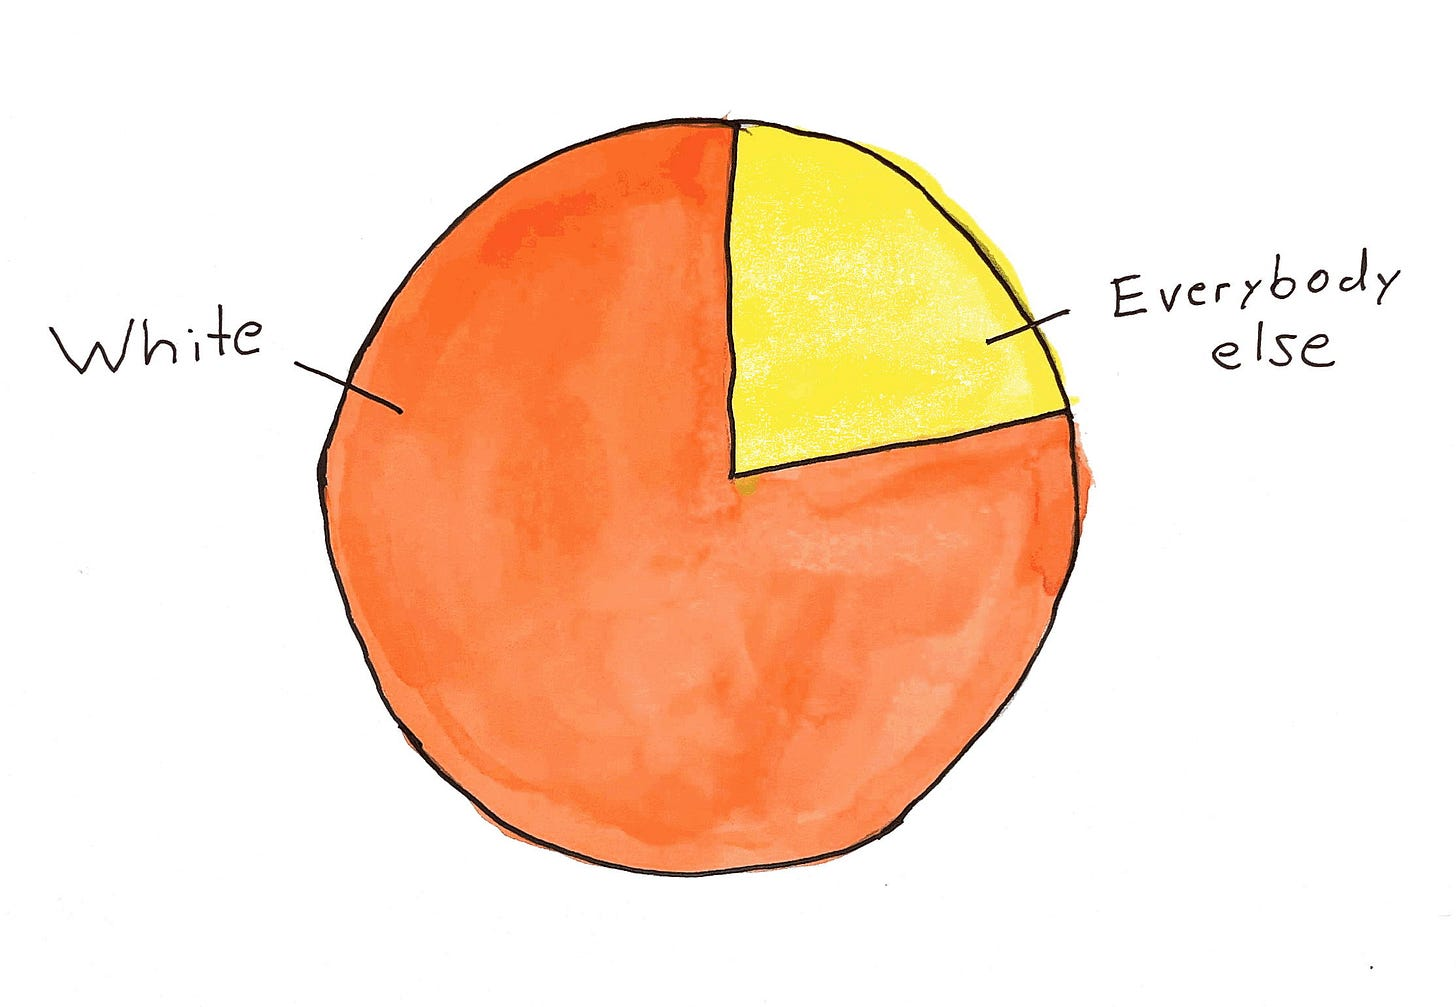 Pie chart showing 80 percent labeled White and the other 20 percent labeled Everybody else